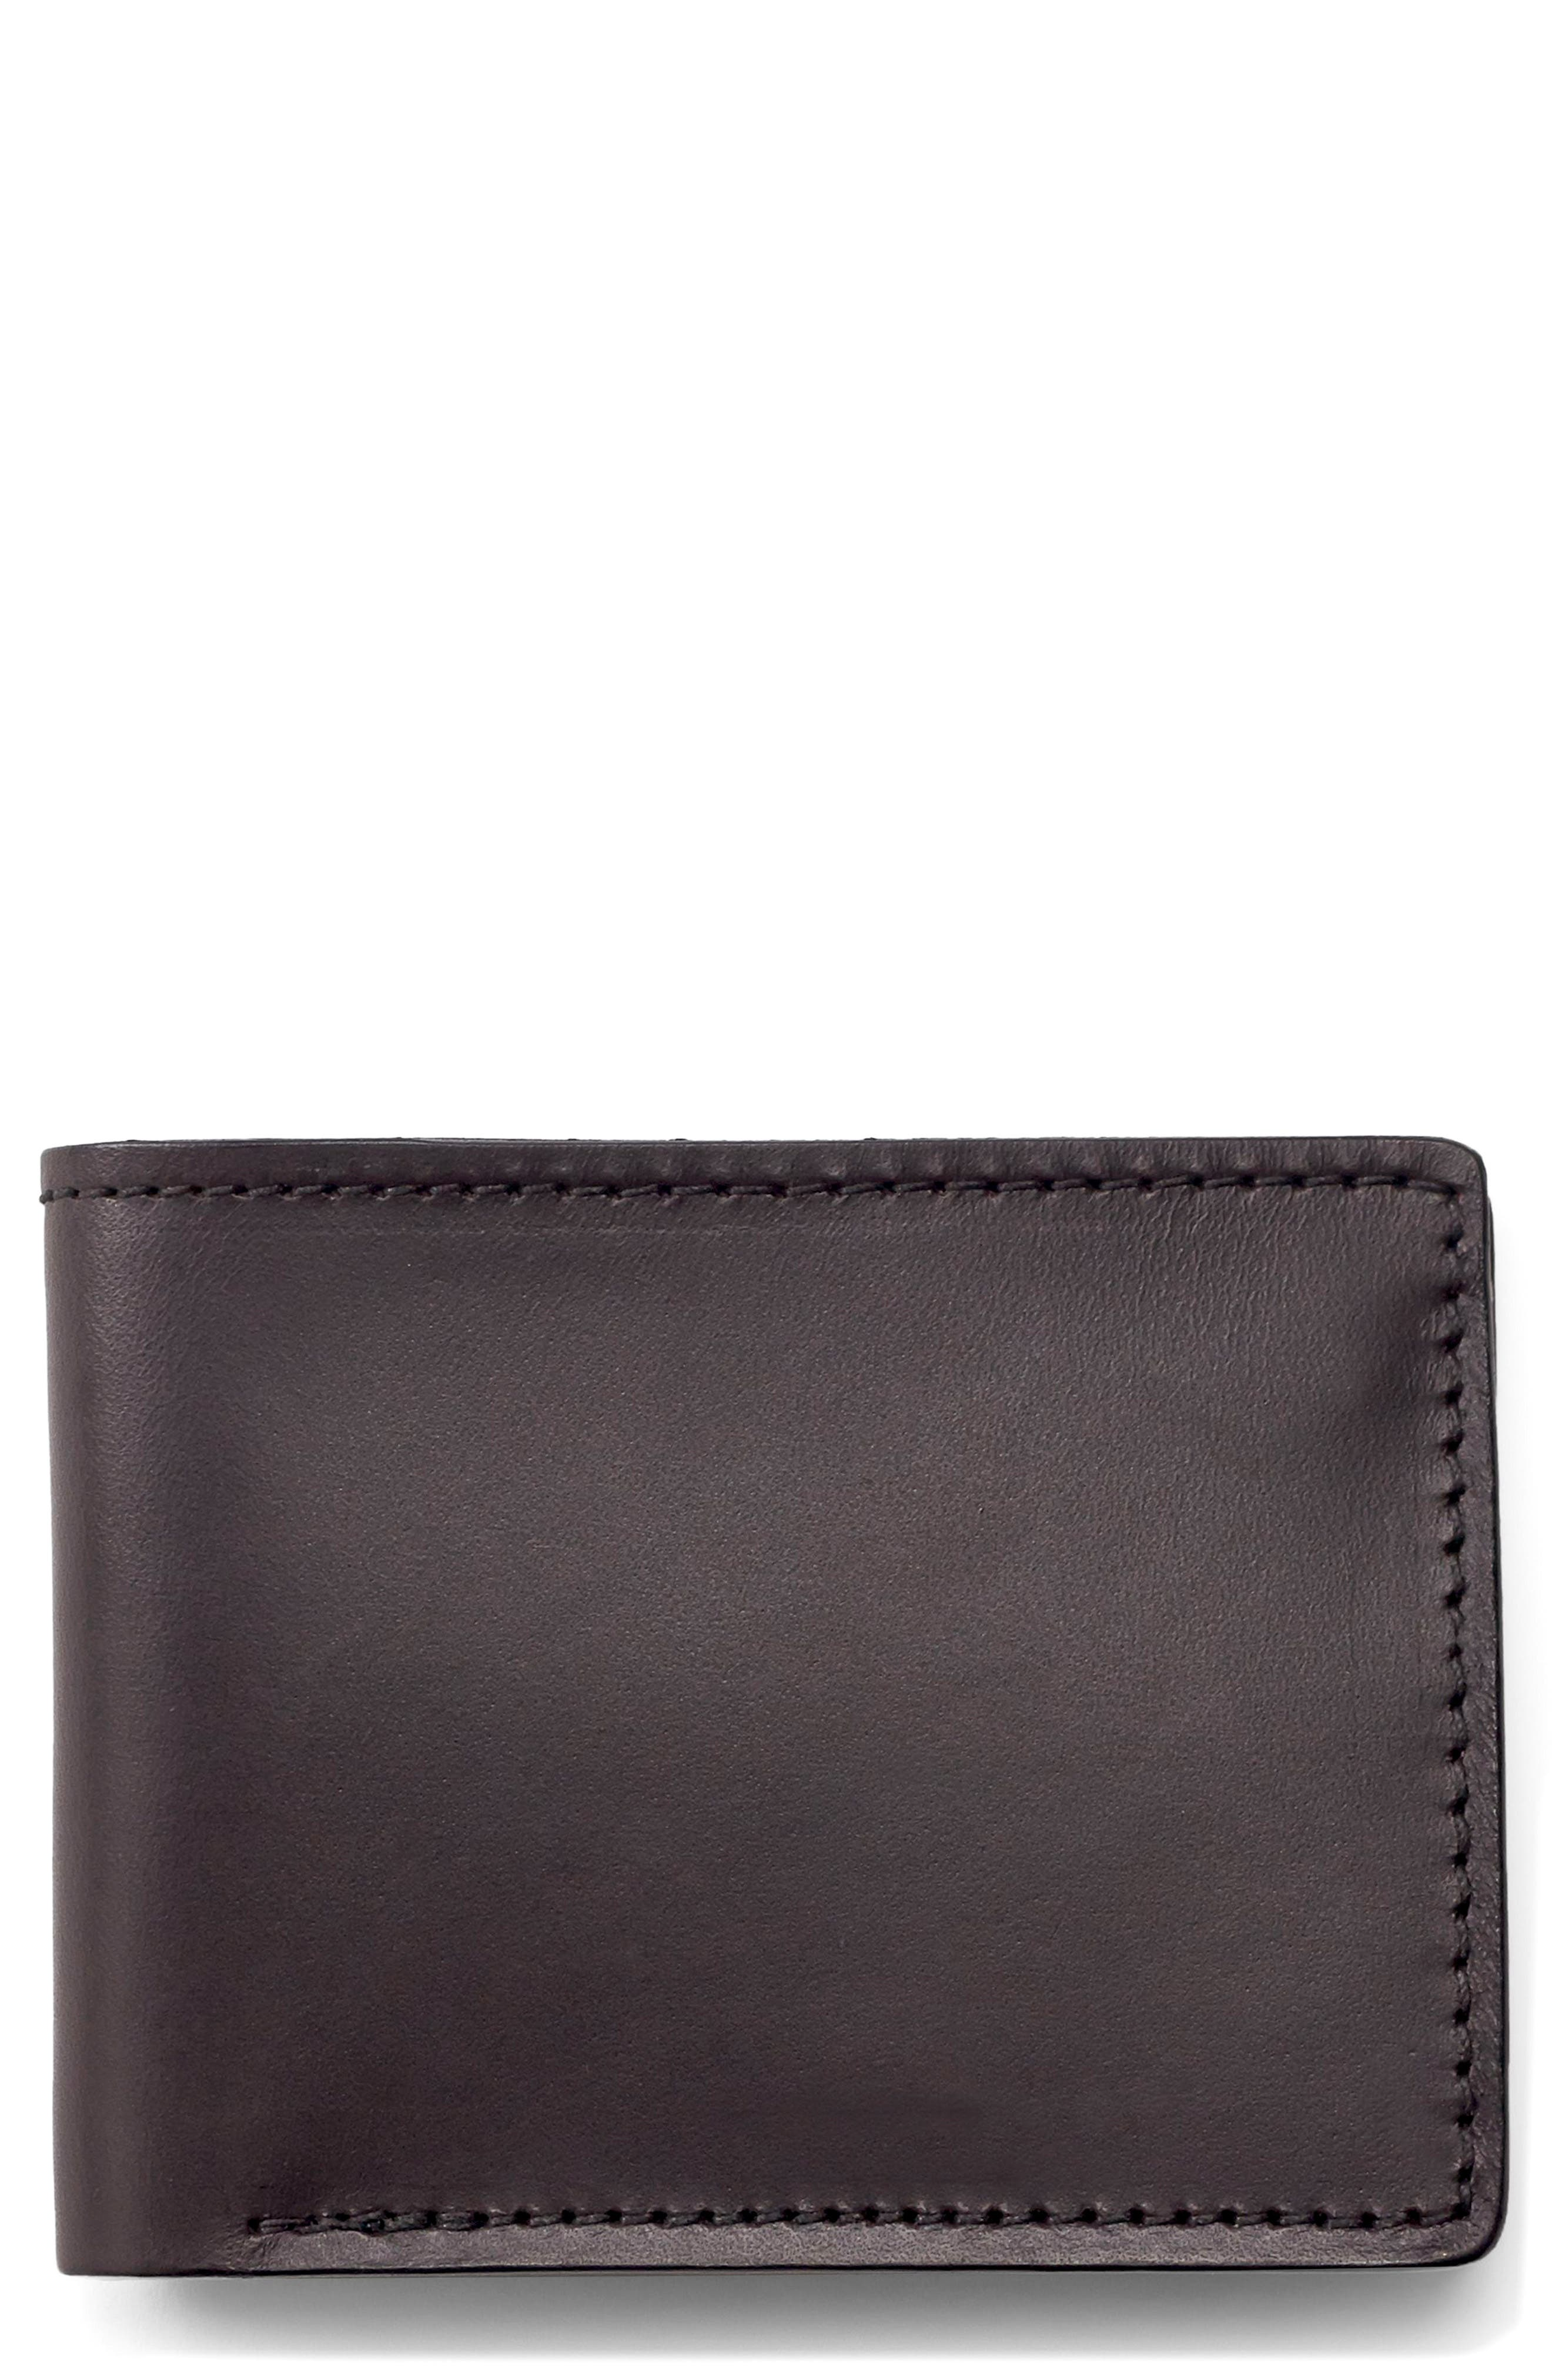 Leather Bifold Leather Wallet,                         Main,                         color, BROWN